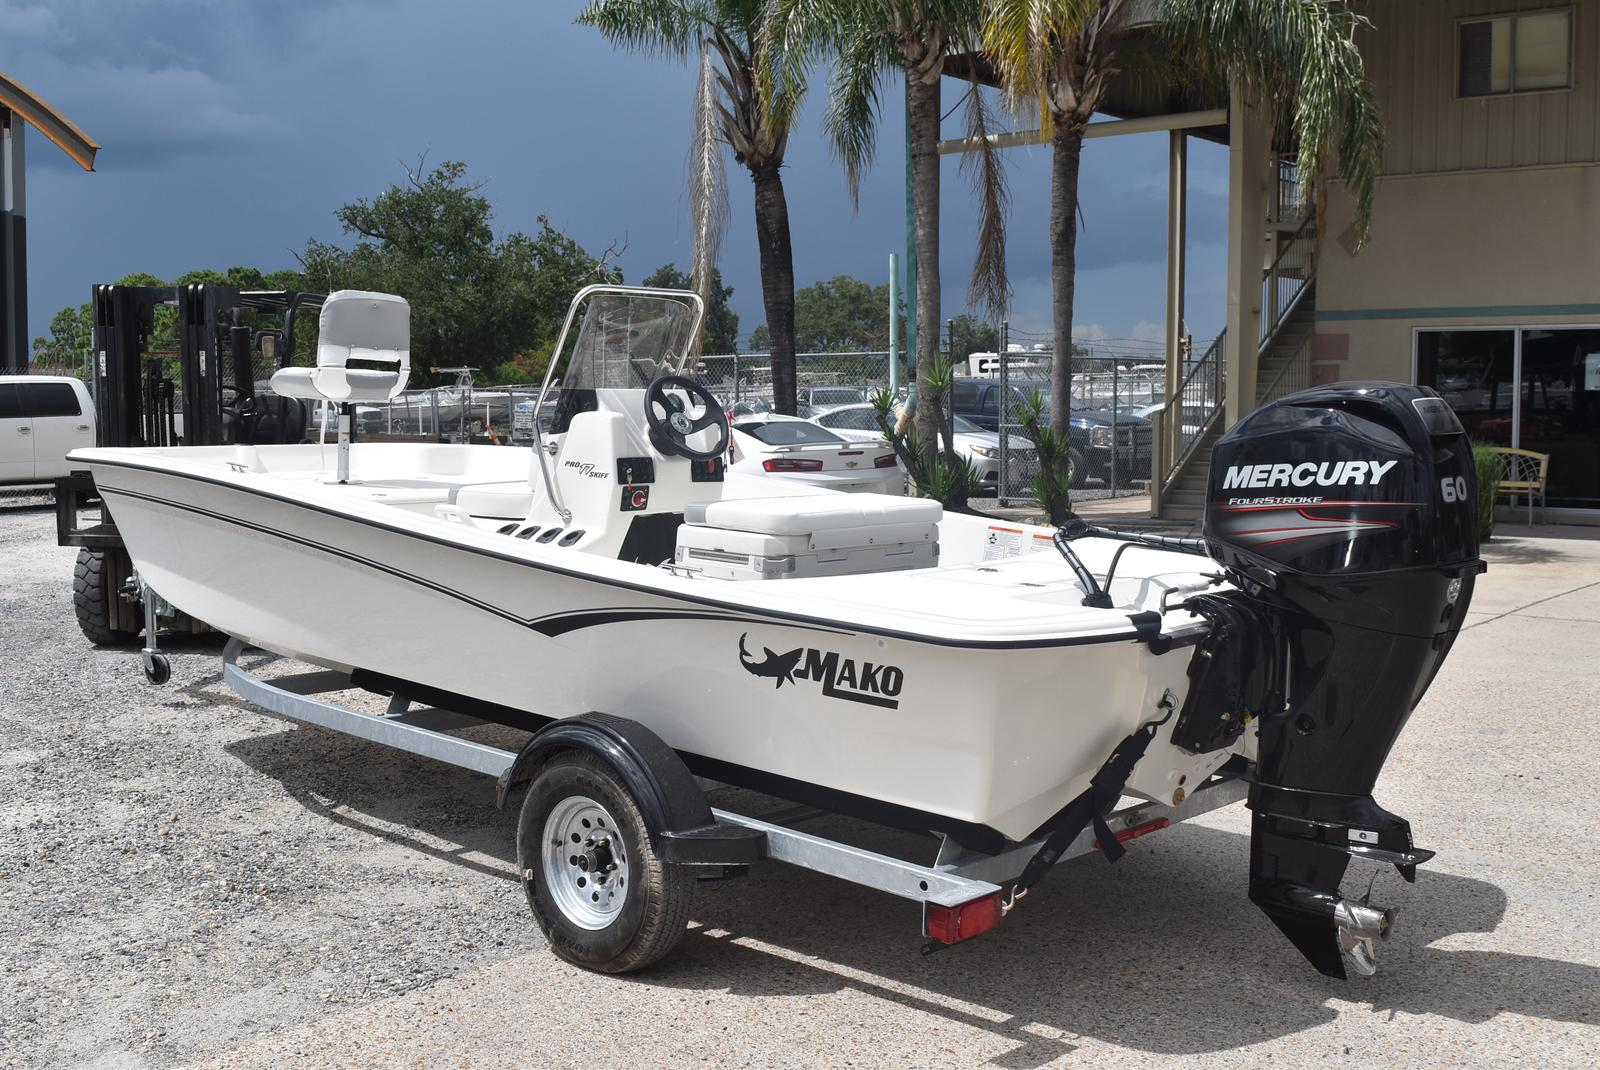 2020 Mako boat for sale, model of the boat is Pro Skiff 17, 75 ELPT & Image # 203 of 702